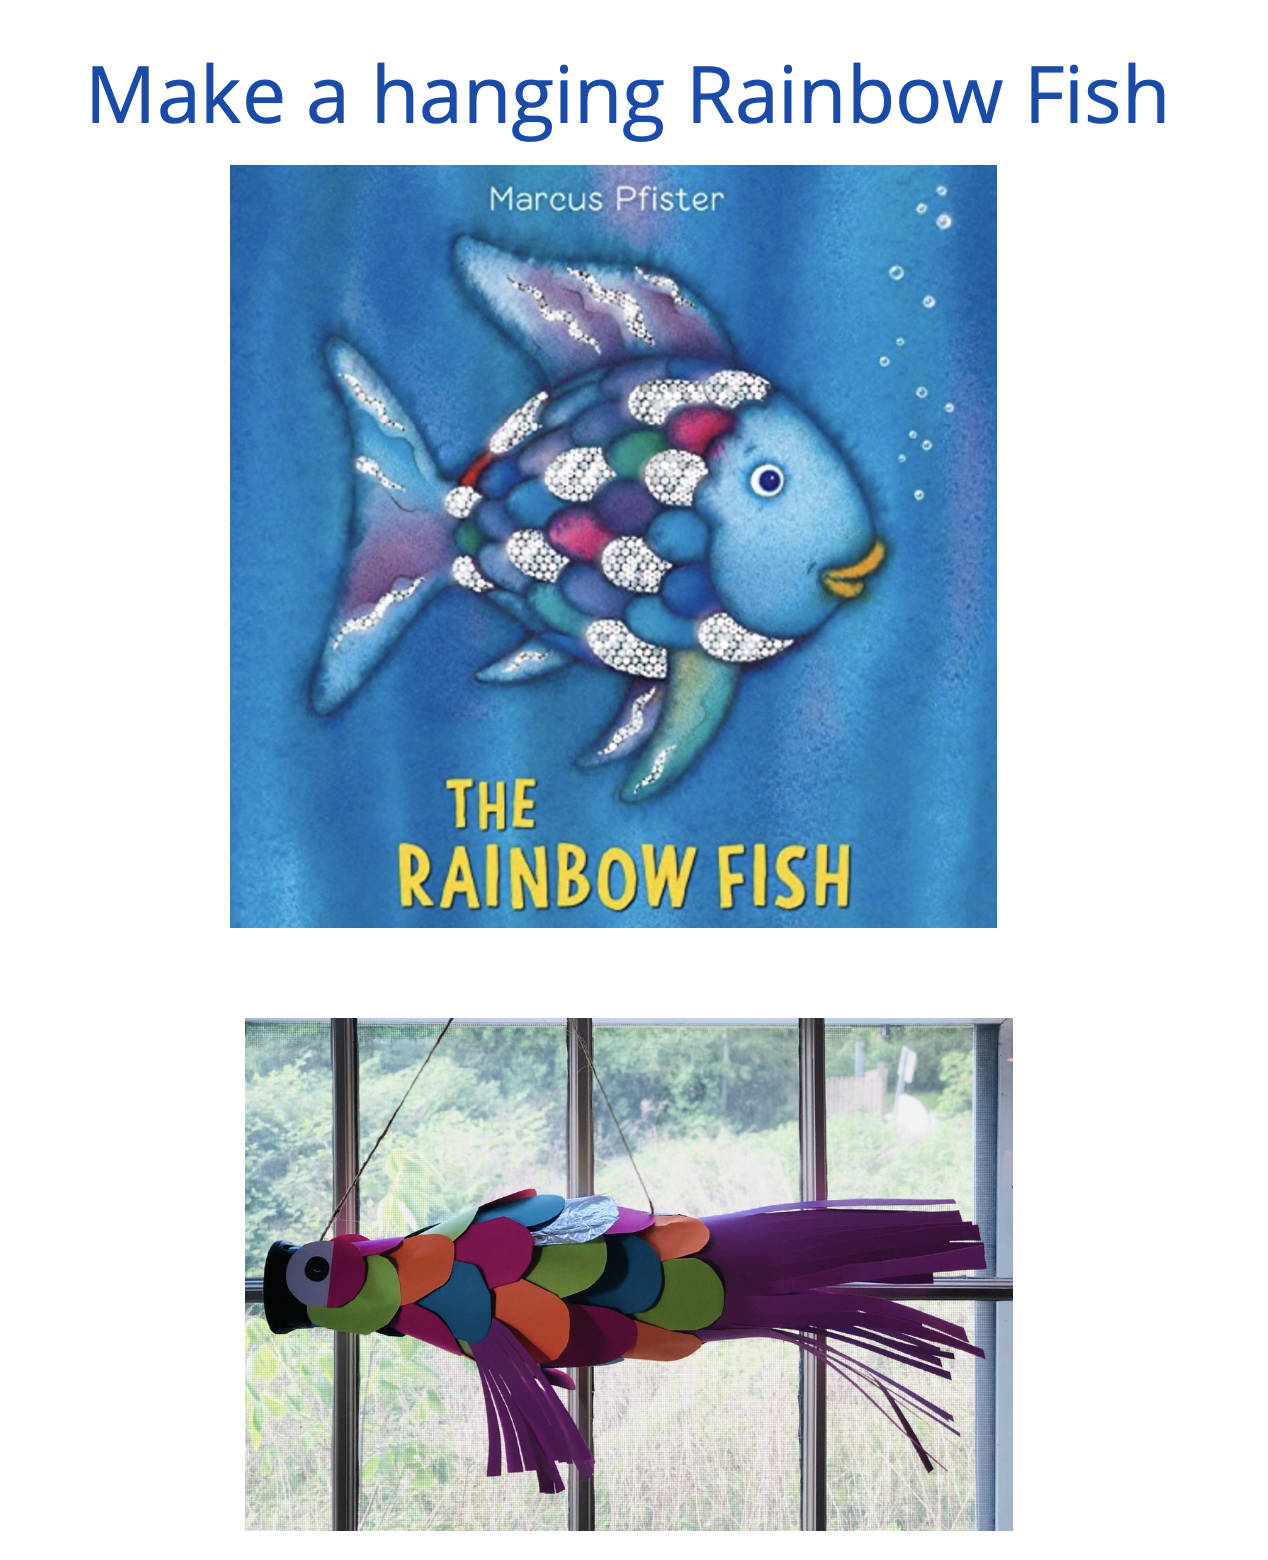 Hanging Rainbow Fish